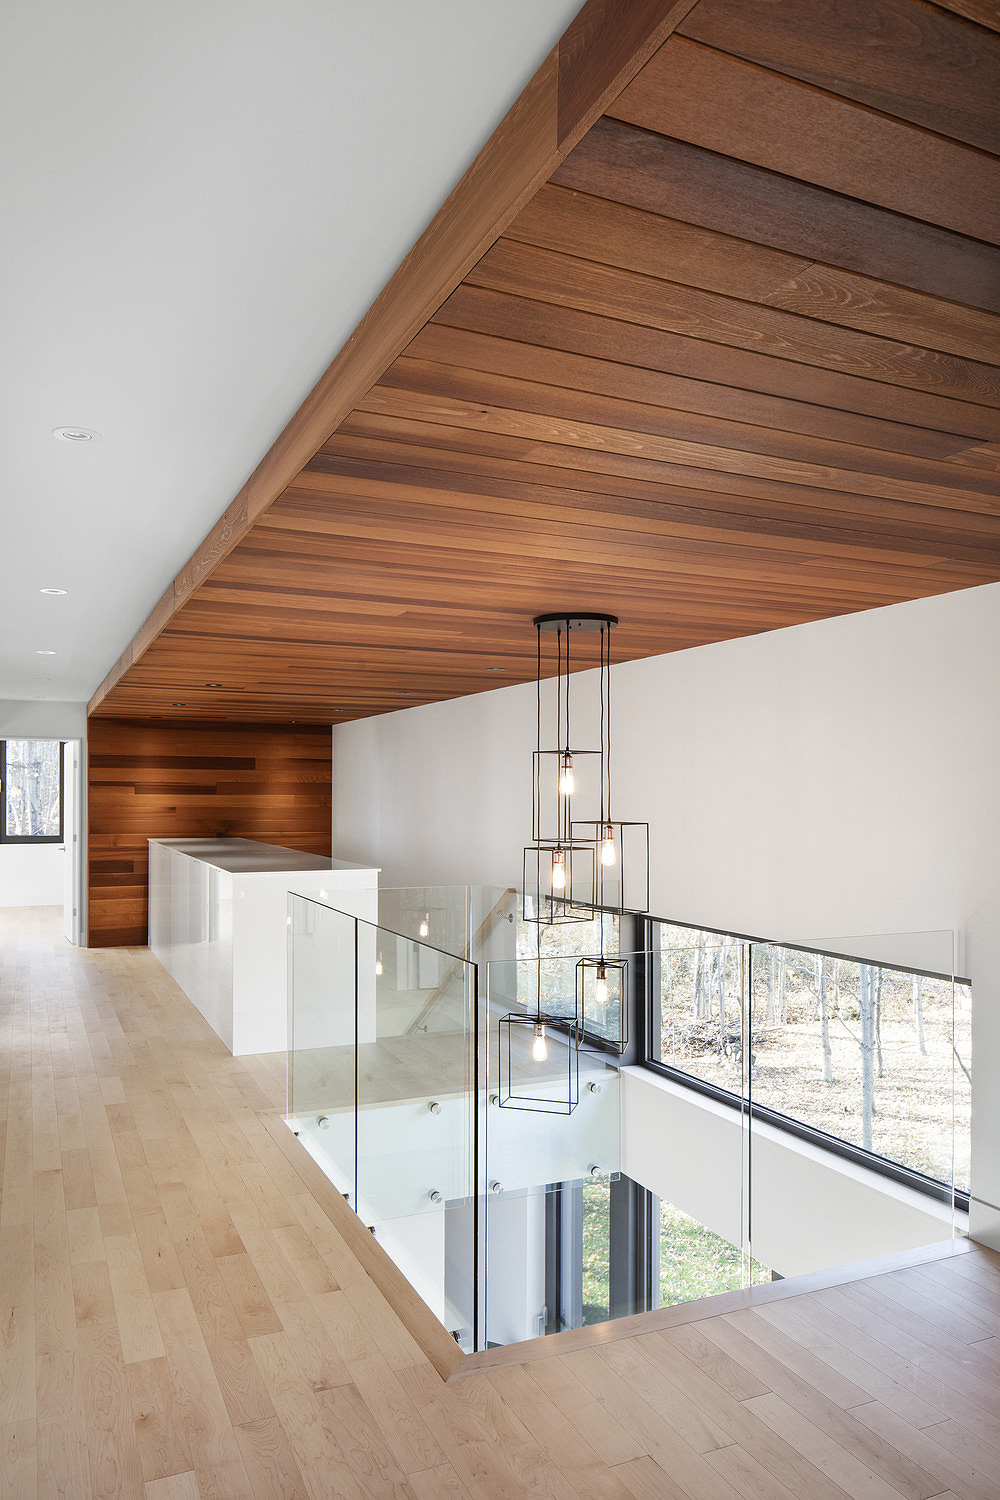 lk-house-bourgeois-lechasseur-architects (7)